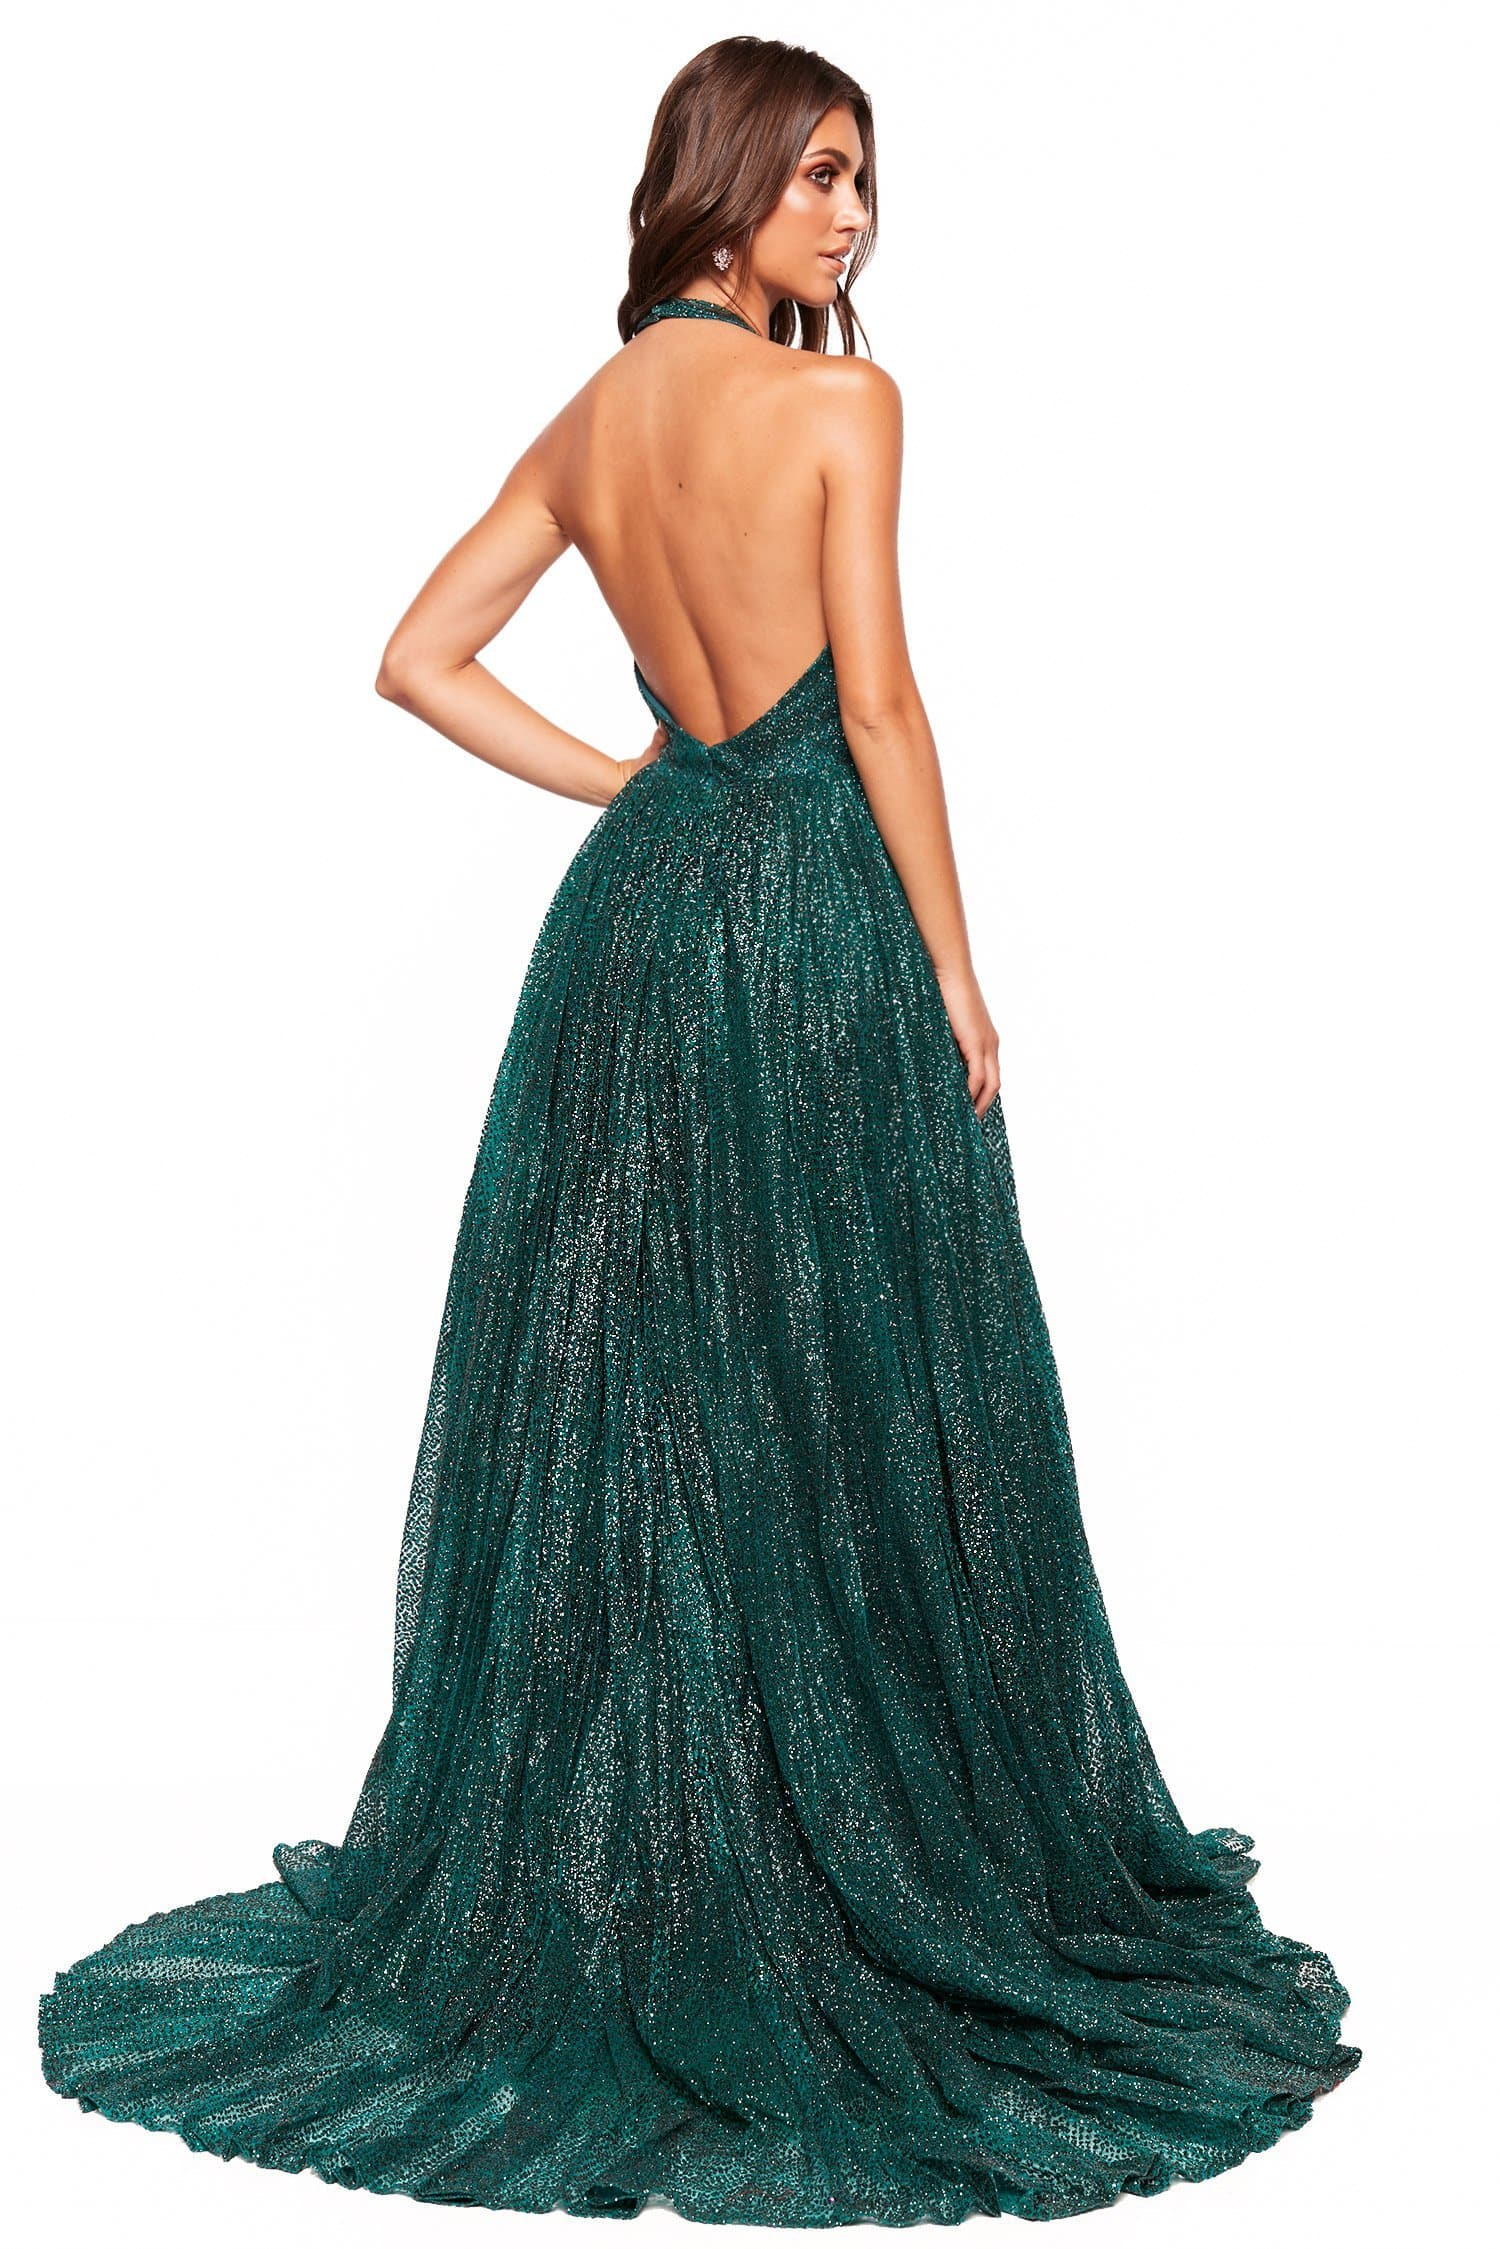 A&N Luxe Saina - Emerald Glitter A-Line Gown with Low Back